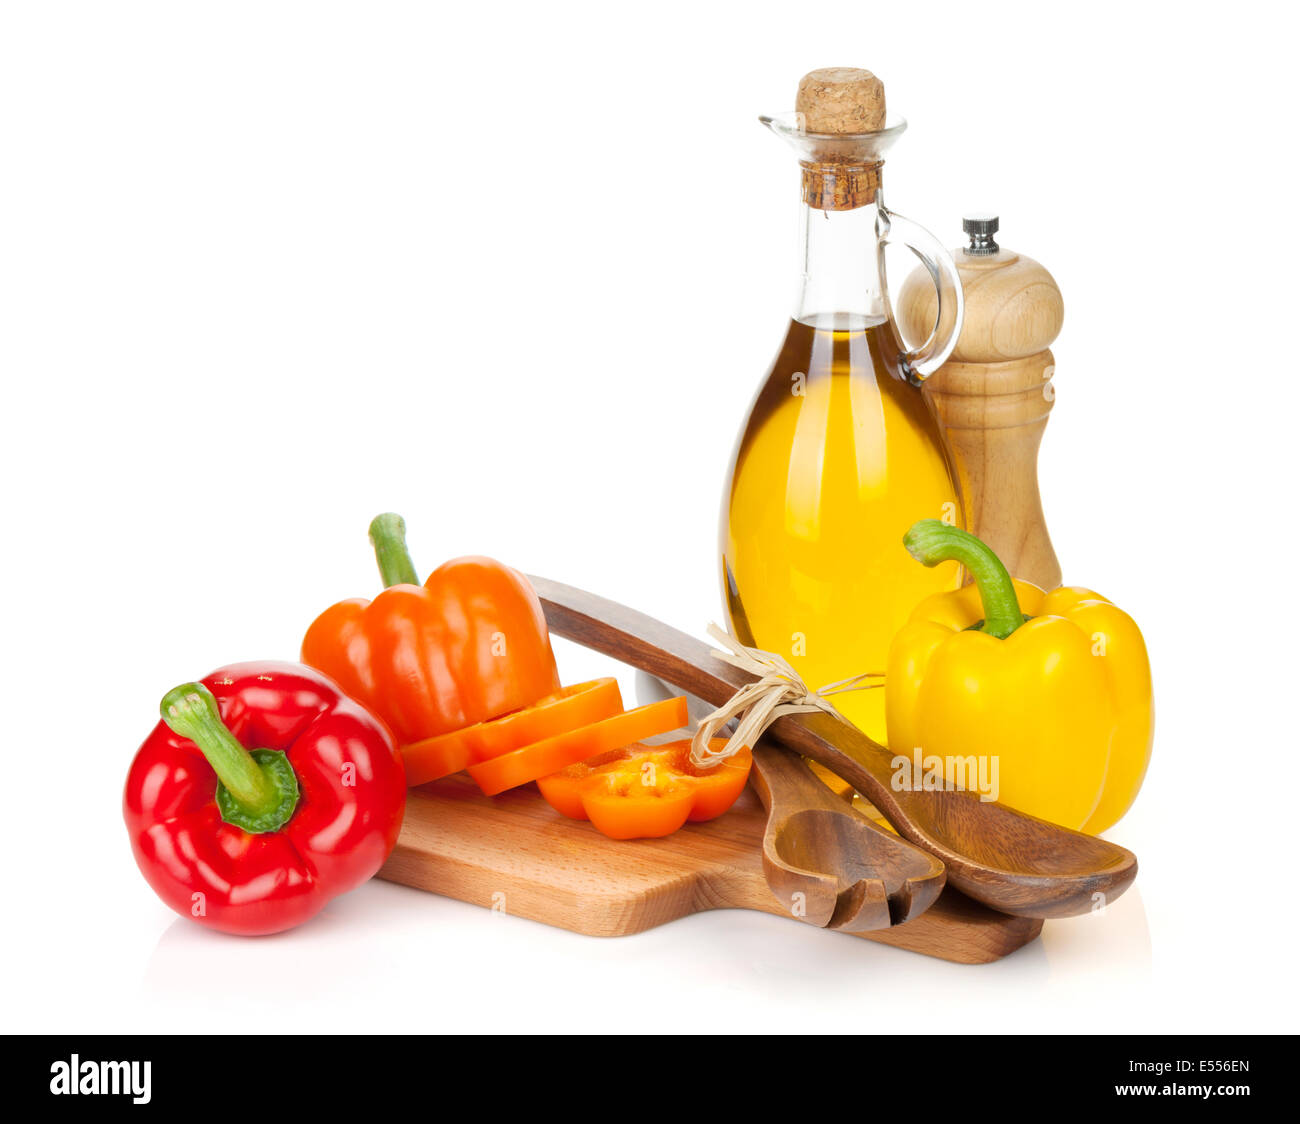 Colorful bell peppers and kitchen utensils. Isolated on white background - Stock Image